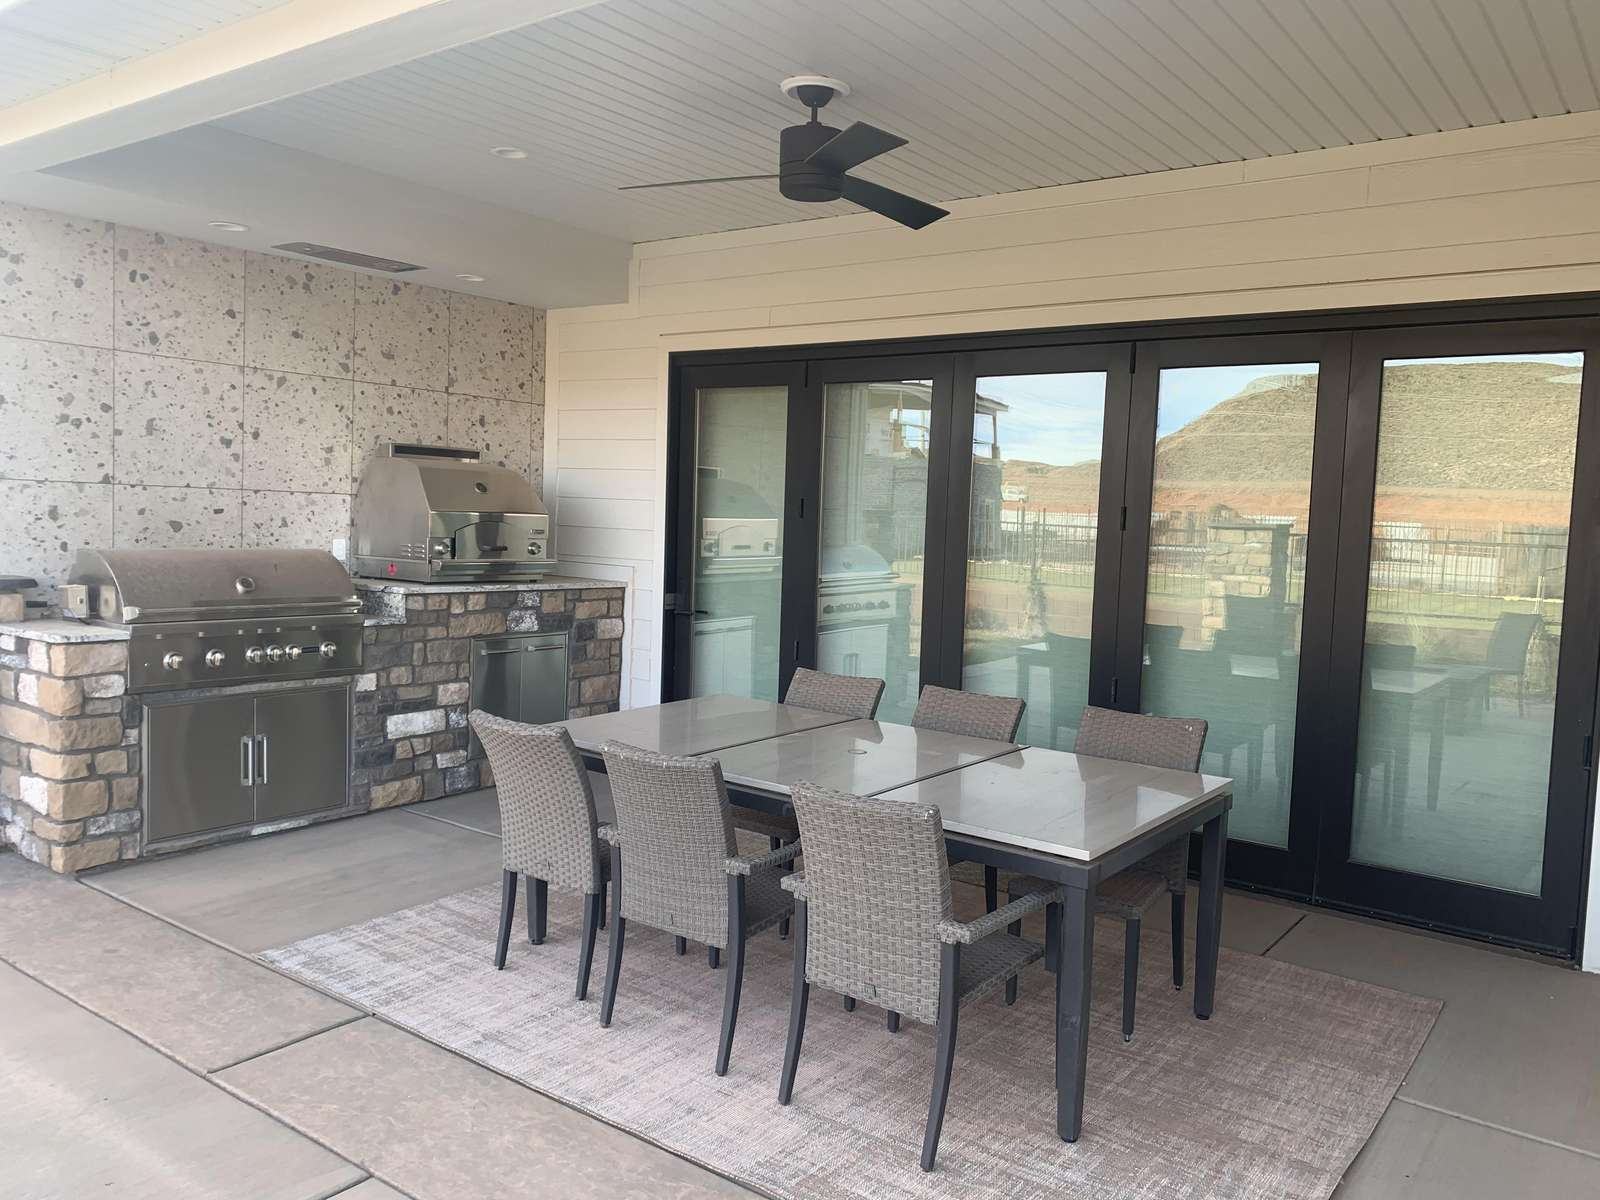 Outdoor kitchen space includes gas grill and pizza oven